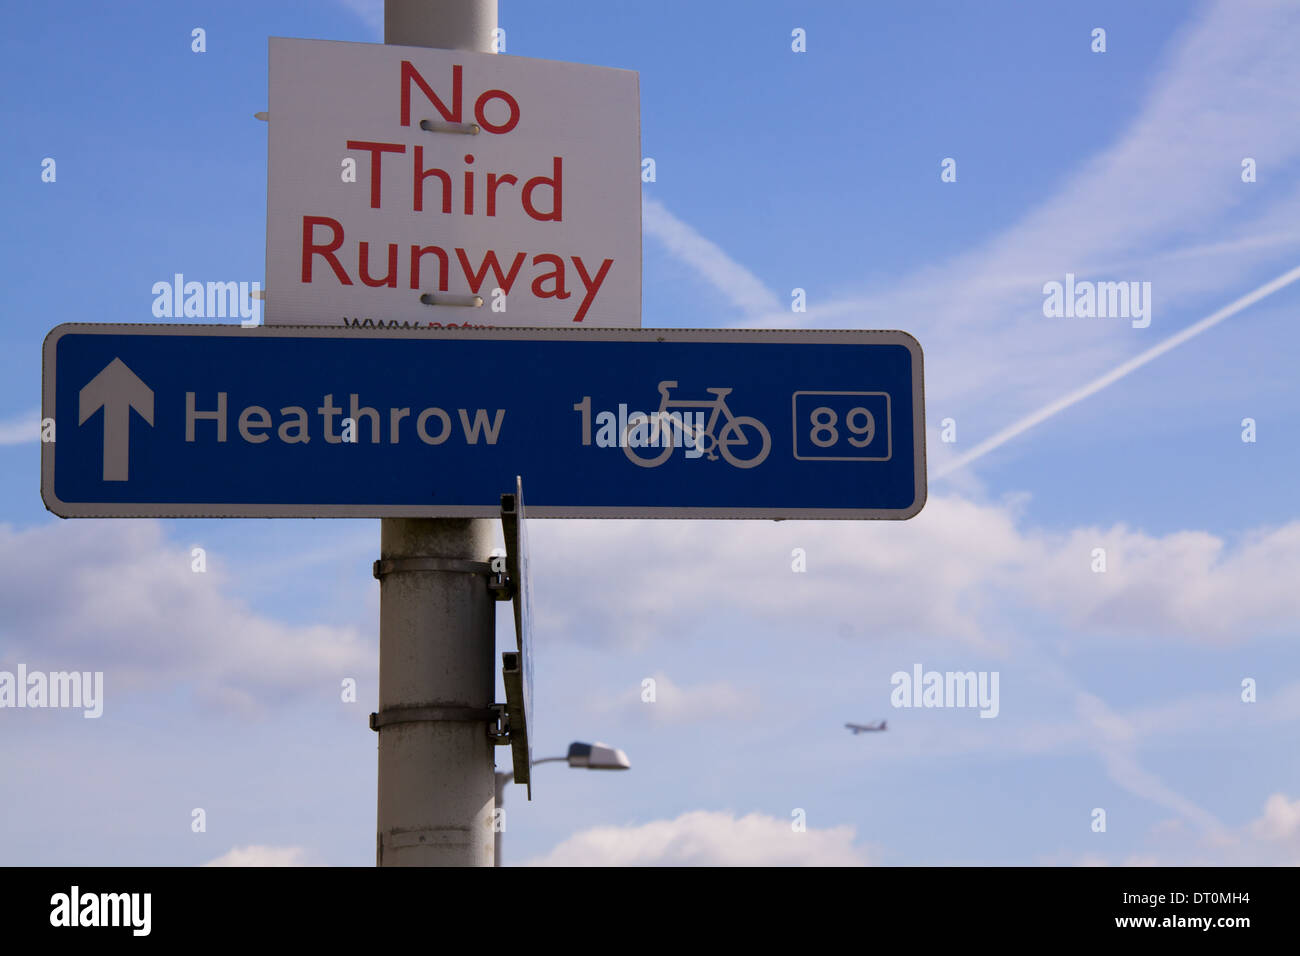 Opposition against third runway on Heathrow Airport in London, UK - Stock Image